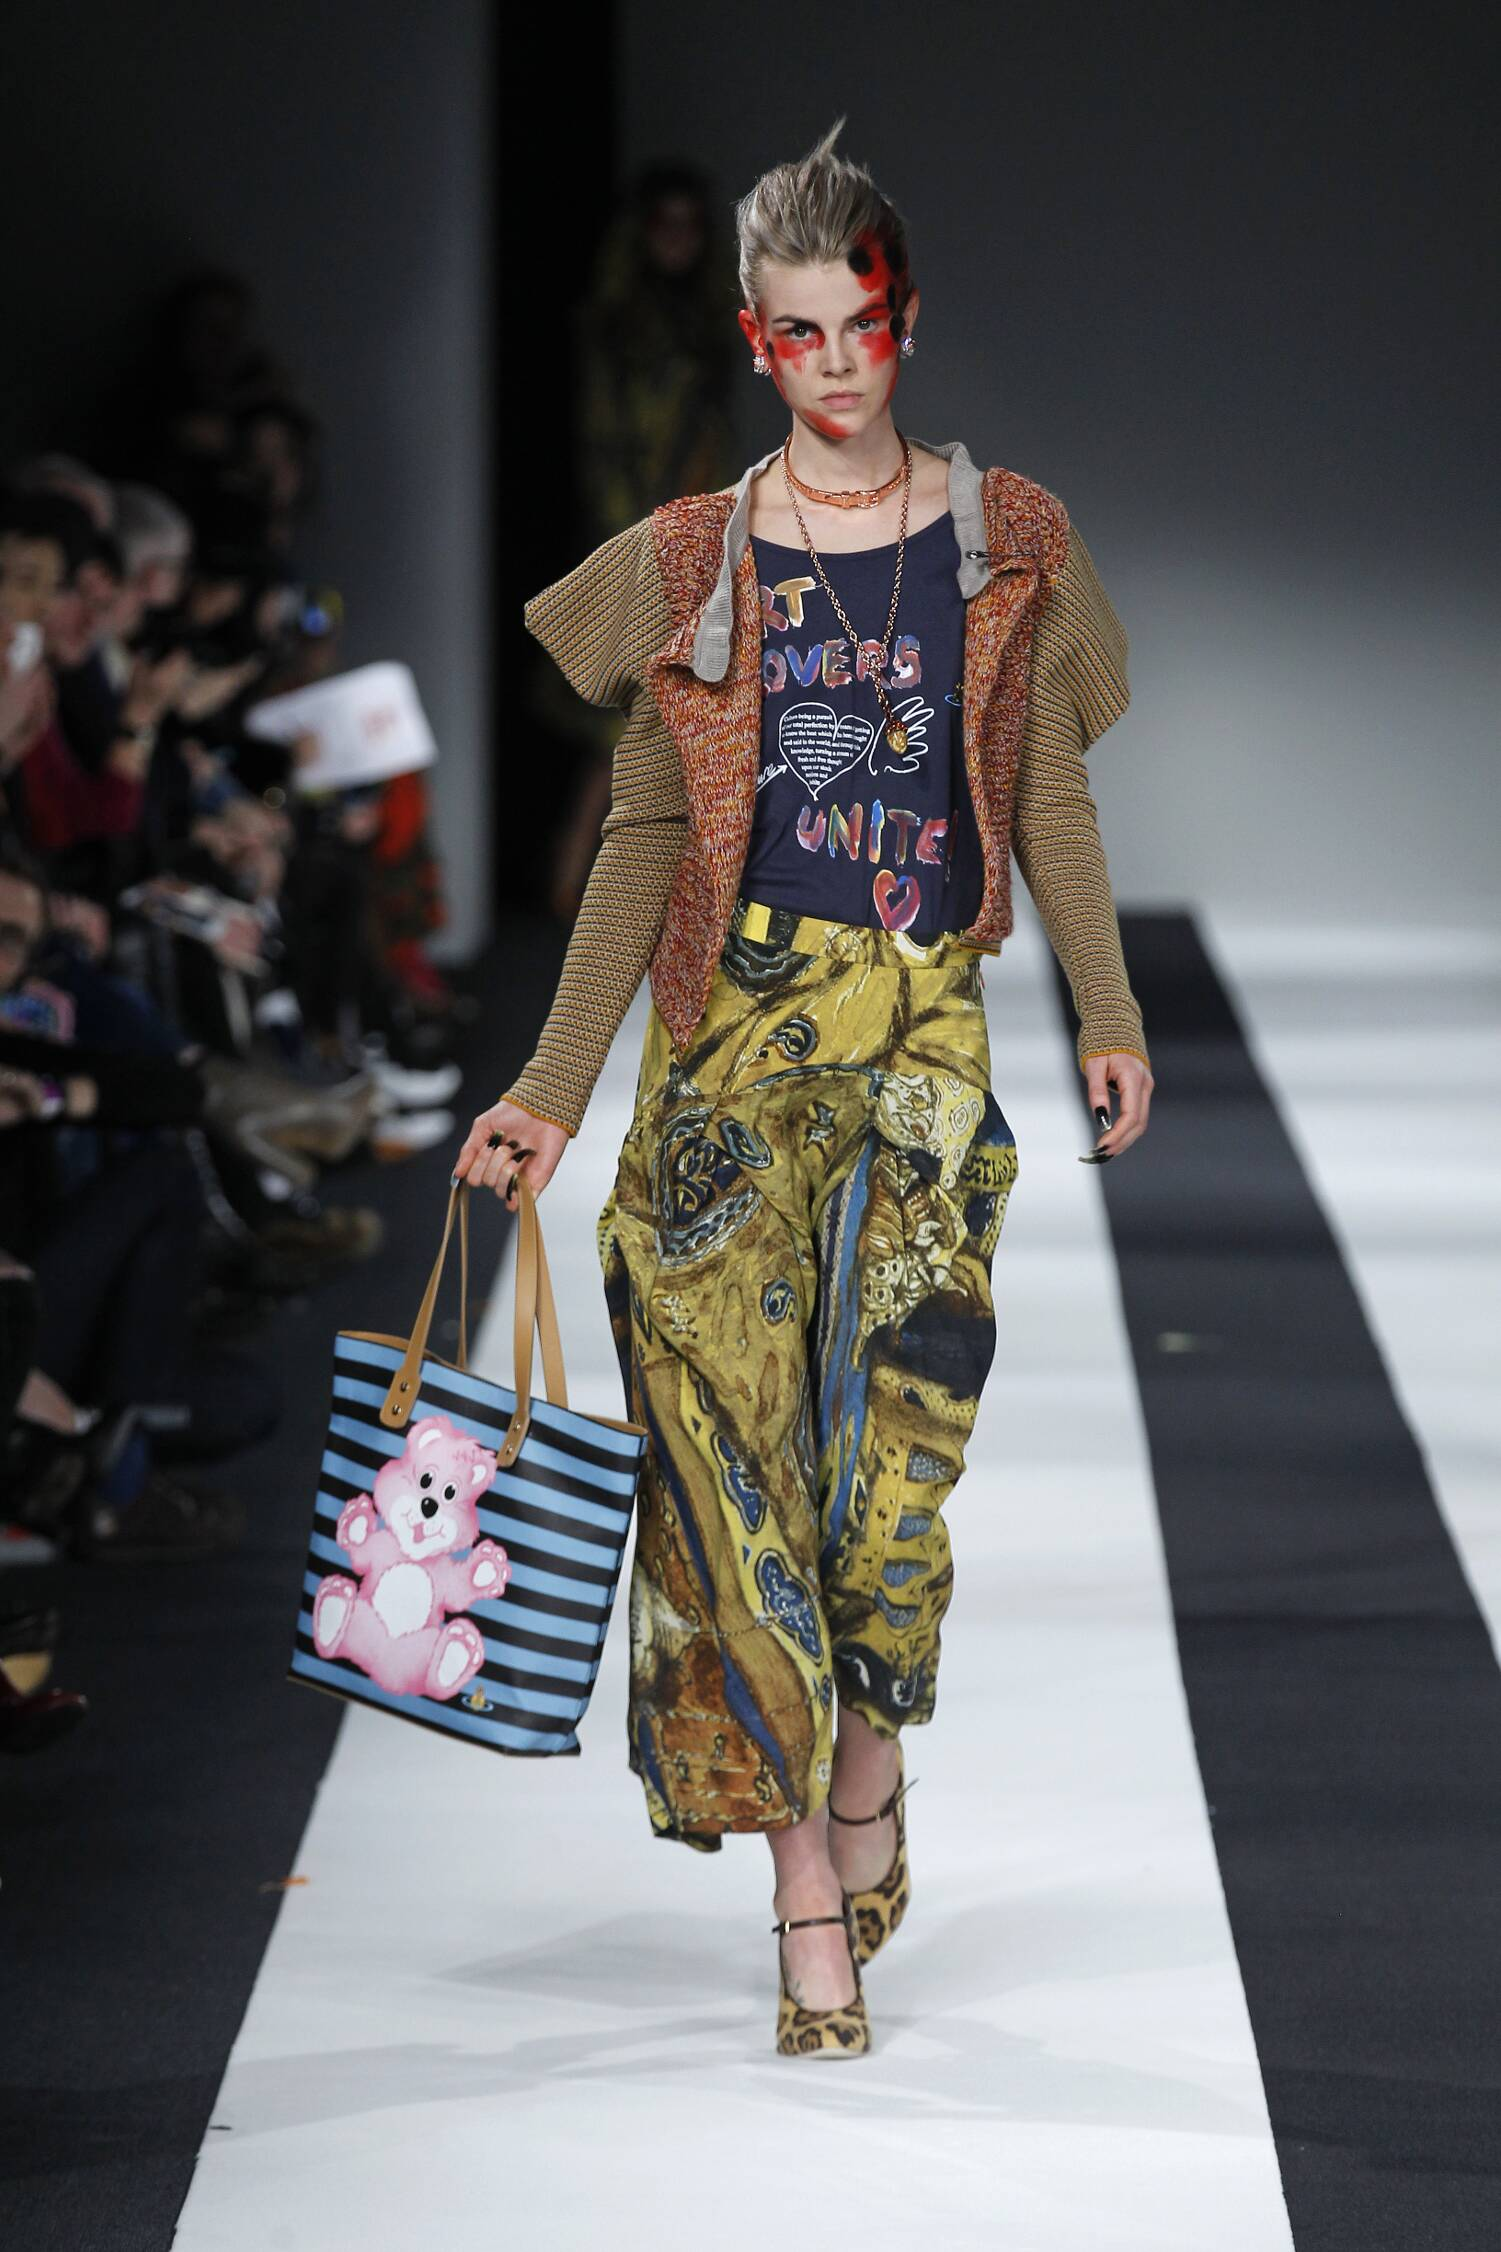 Catwalk Vivienne Westwood Red Label Womenswear Collection Winter 2015